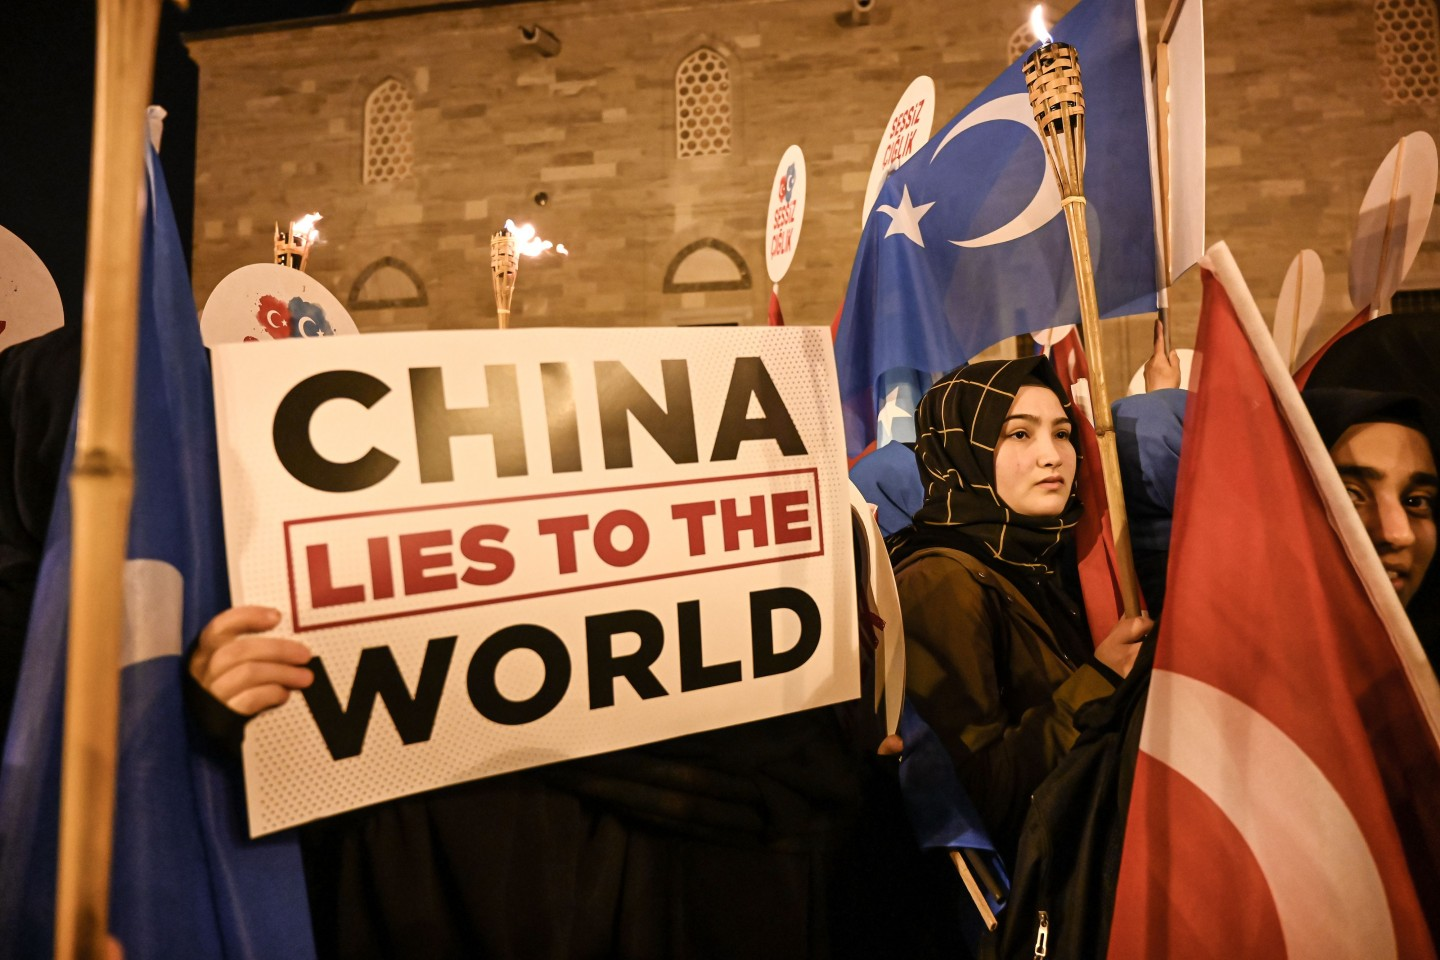 Supporters of China's Muslim Uighur minority wave flag of East Turkestan and hold placards on December 20, 2019 during a demostration at Fatih in Istanbul. They called for an end to the crackdown in China's northwestern region, where upwards of one million Uighurs and other mostly Muslim minorities are believed to be held in re-education camps. (Ozan Kose/AFP)